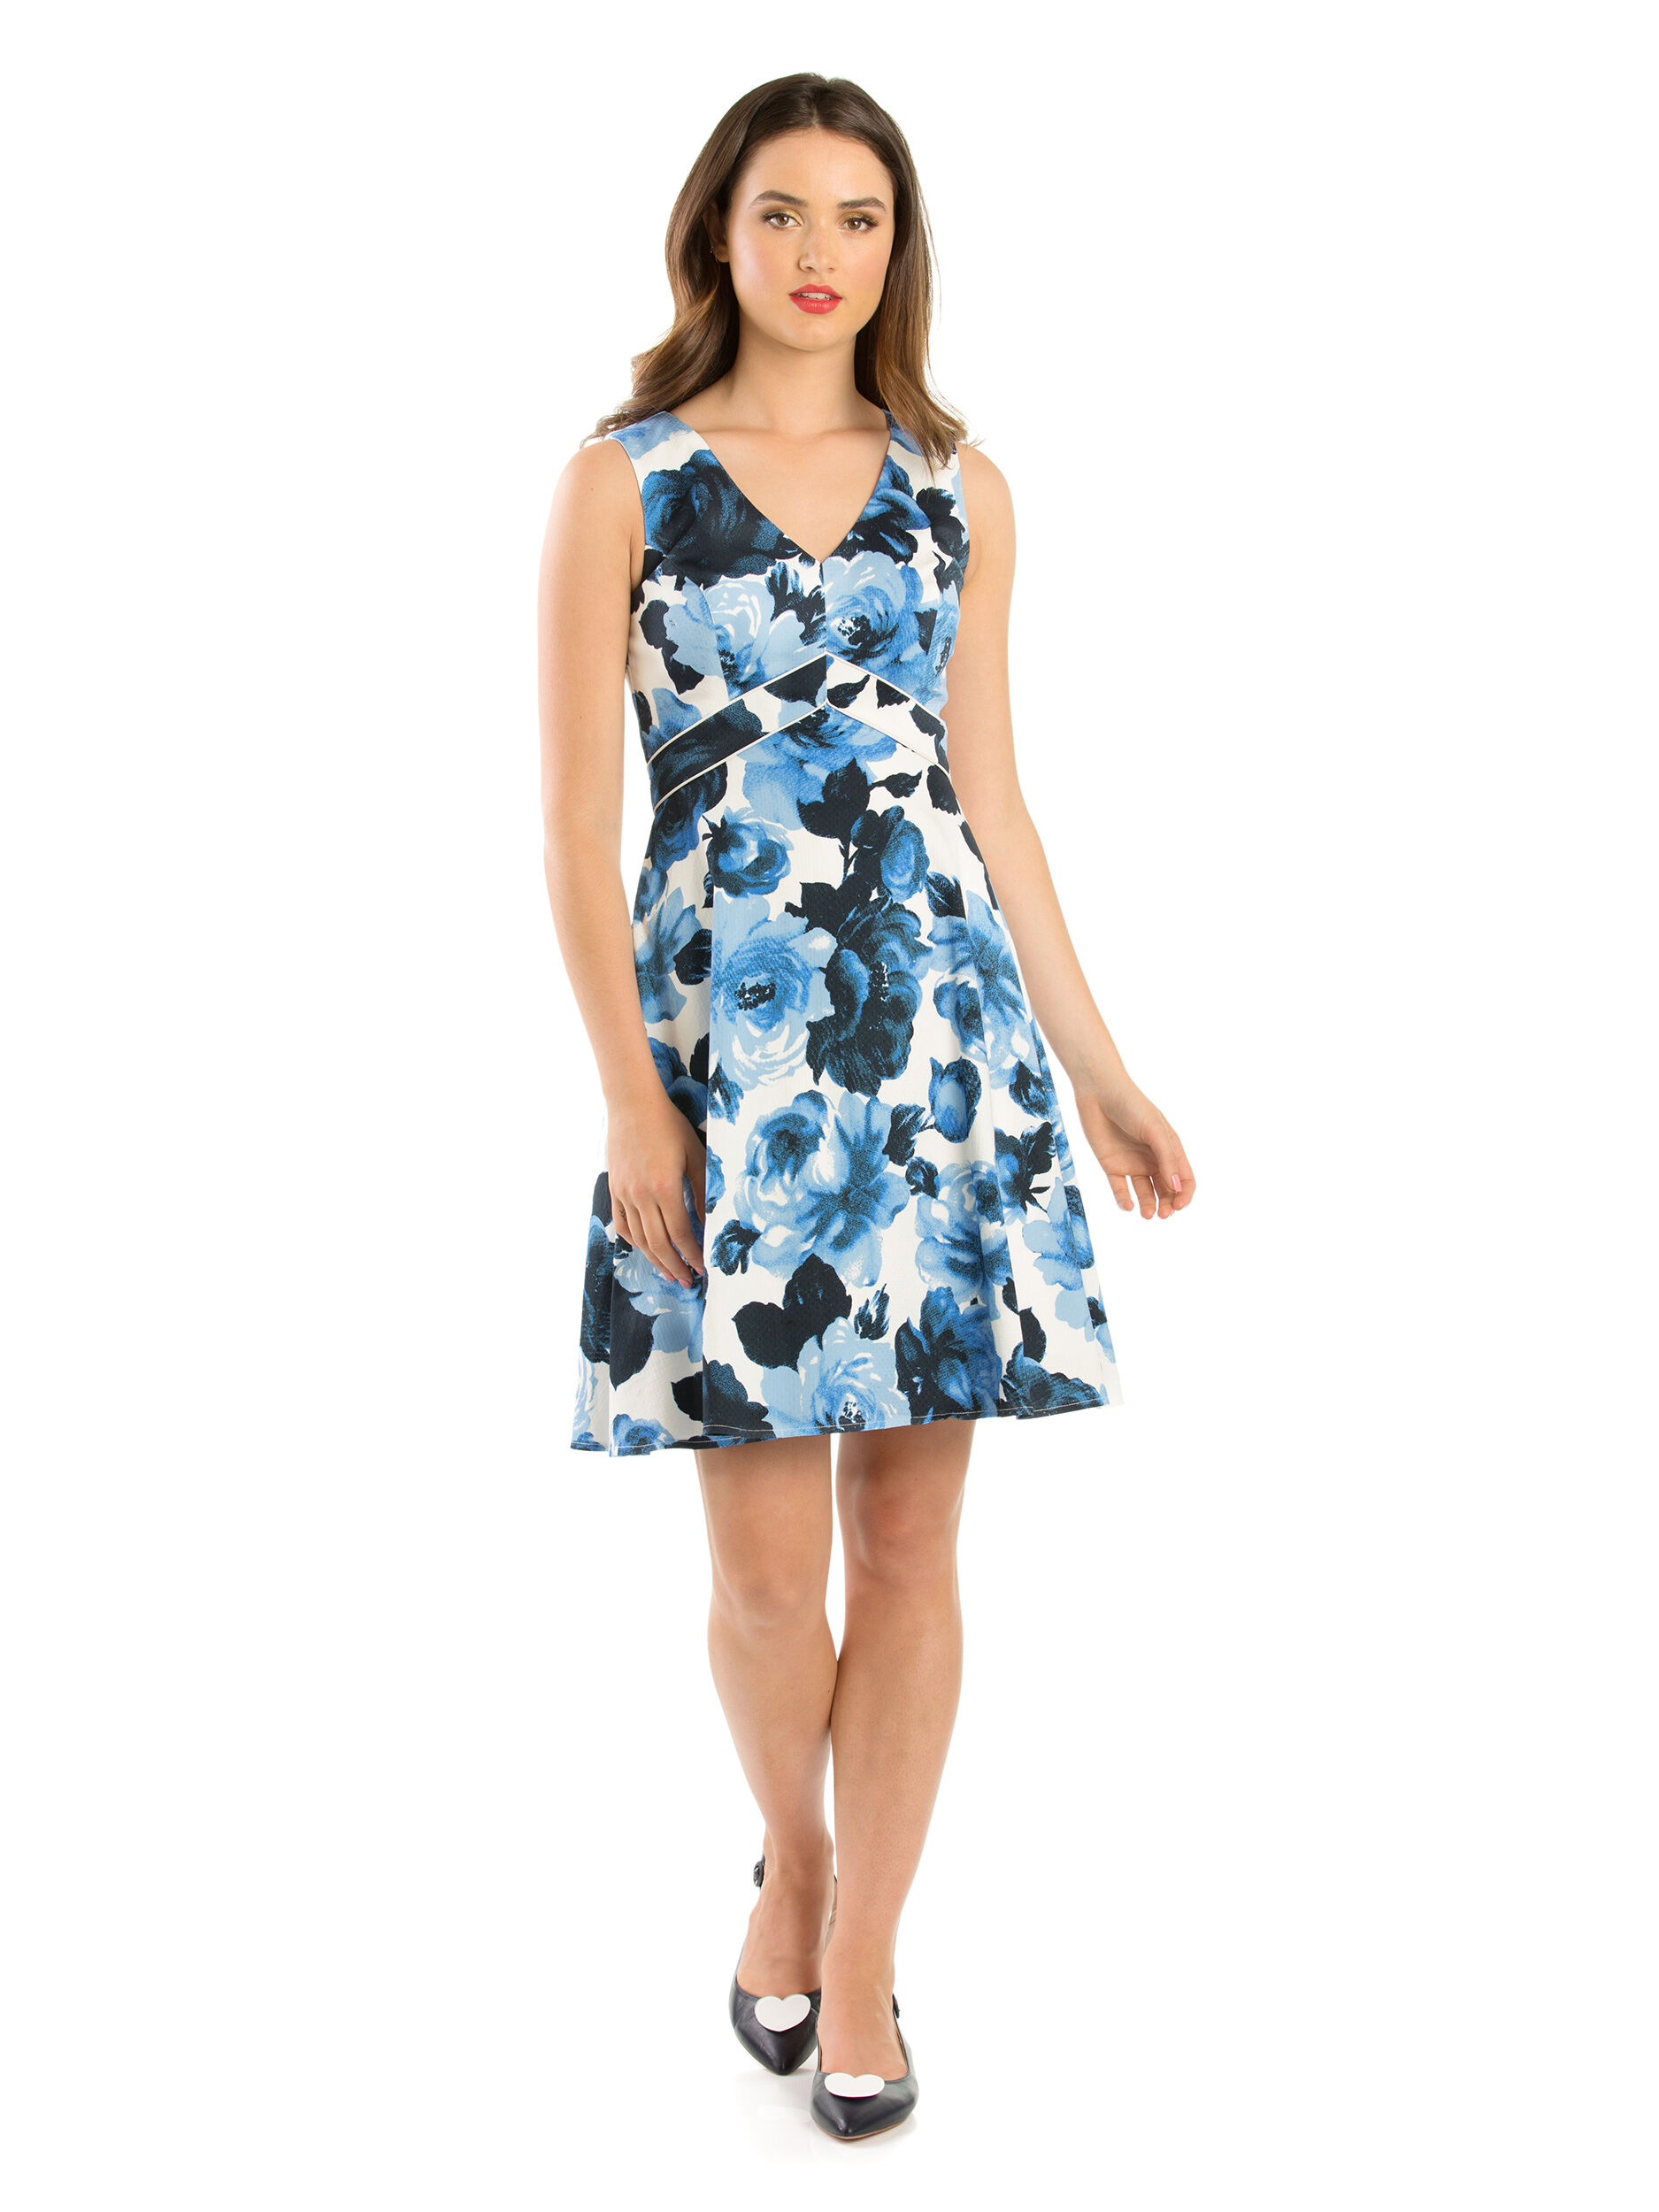 Teen girl clothing and accessory catalog